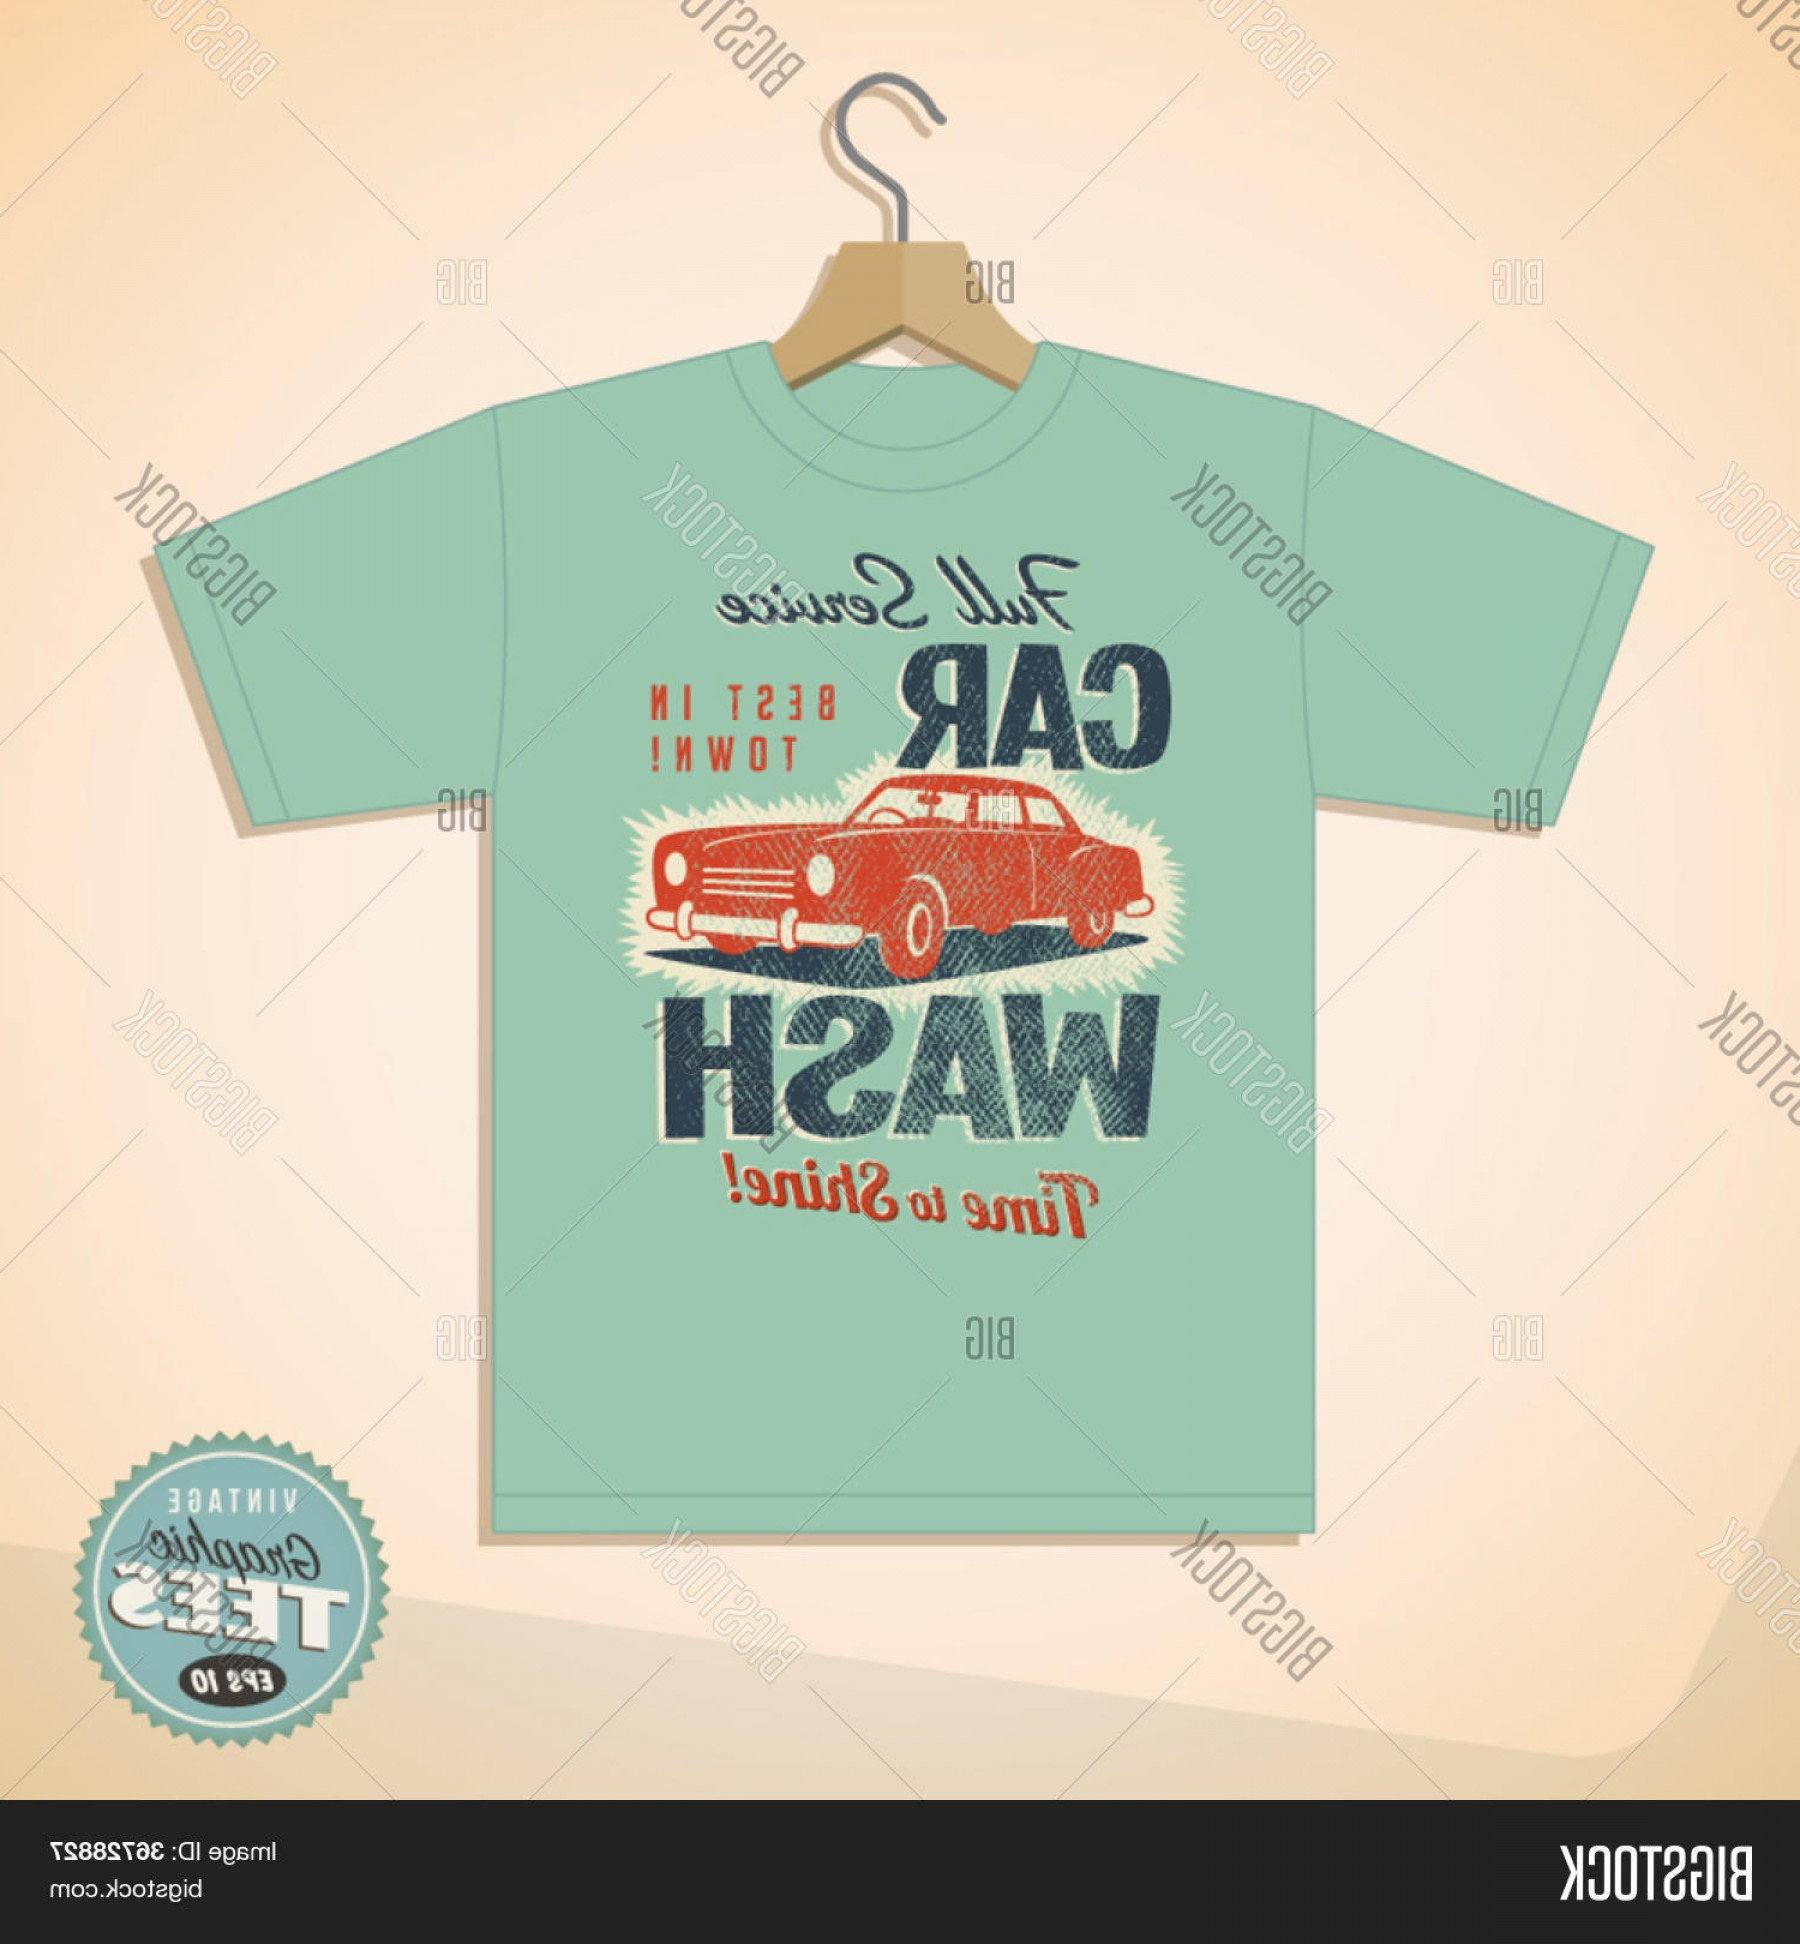 Car Wash Vector Graphics: Stock Vector Vintage Graphic T Shirt Design Car Wash Vector Eps Grunge Effects Can Be Easily Removed For A Cleaner Look